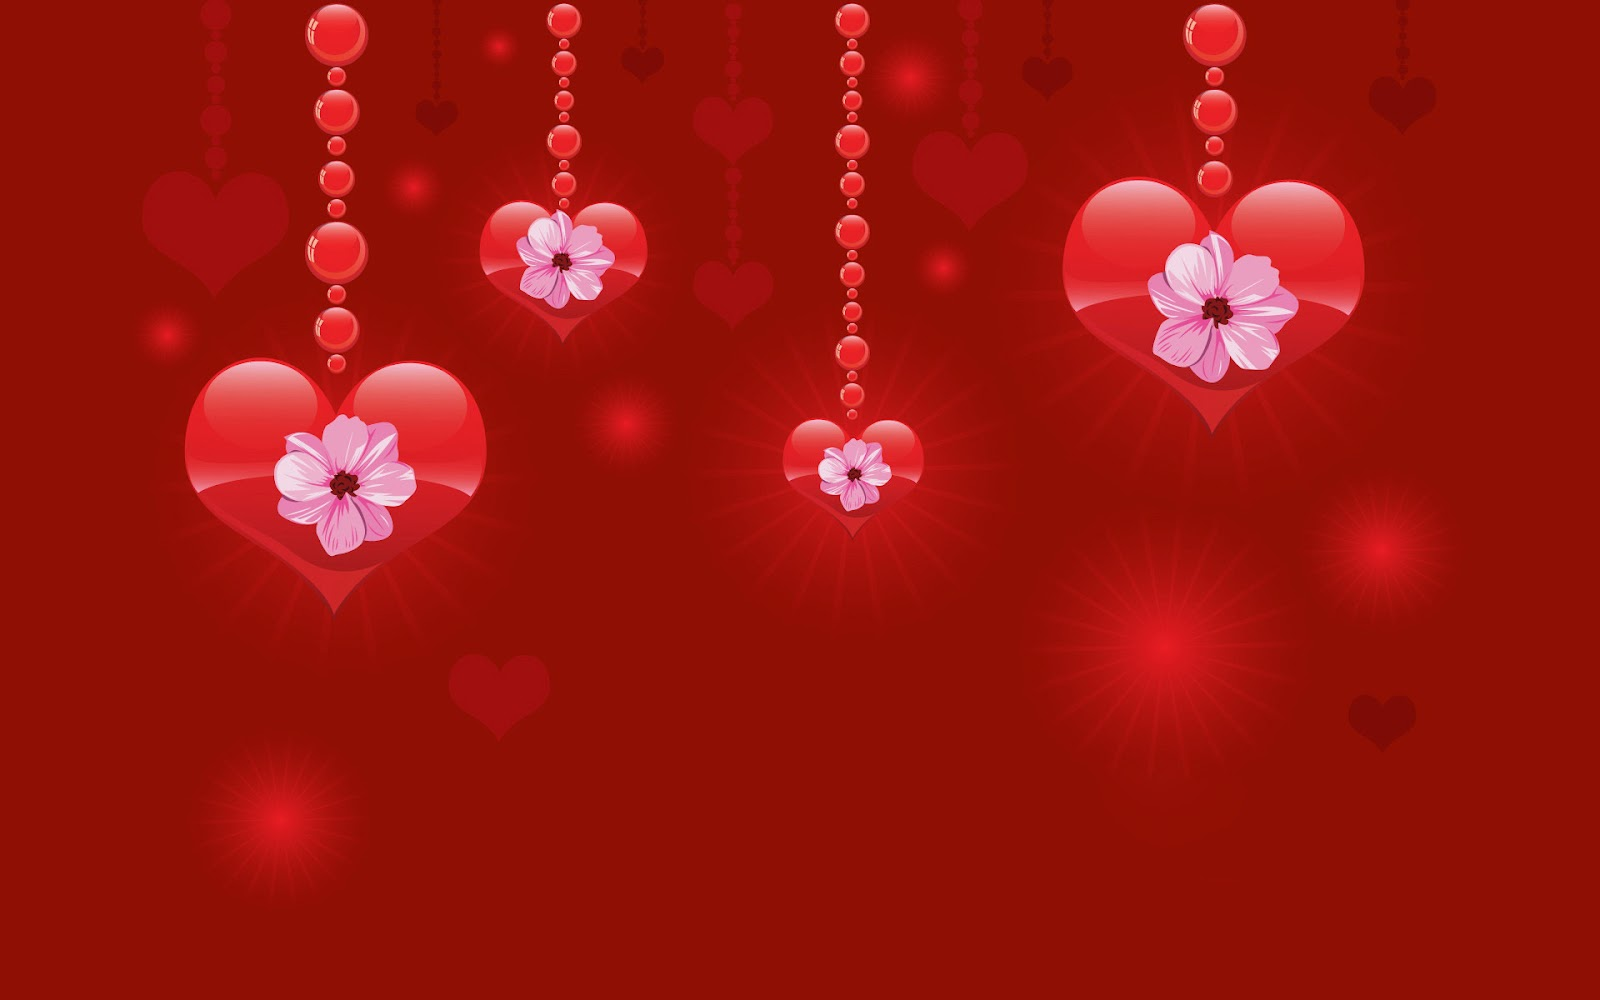 Valentines Day Wallpapers 2013 - 2014 ~ LOVE QUOTES